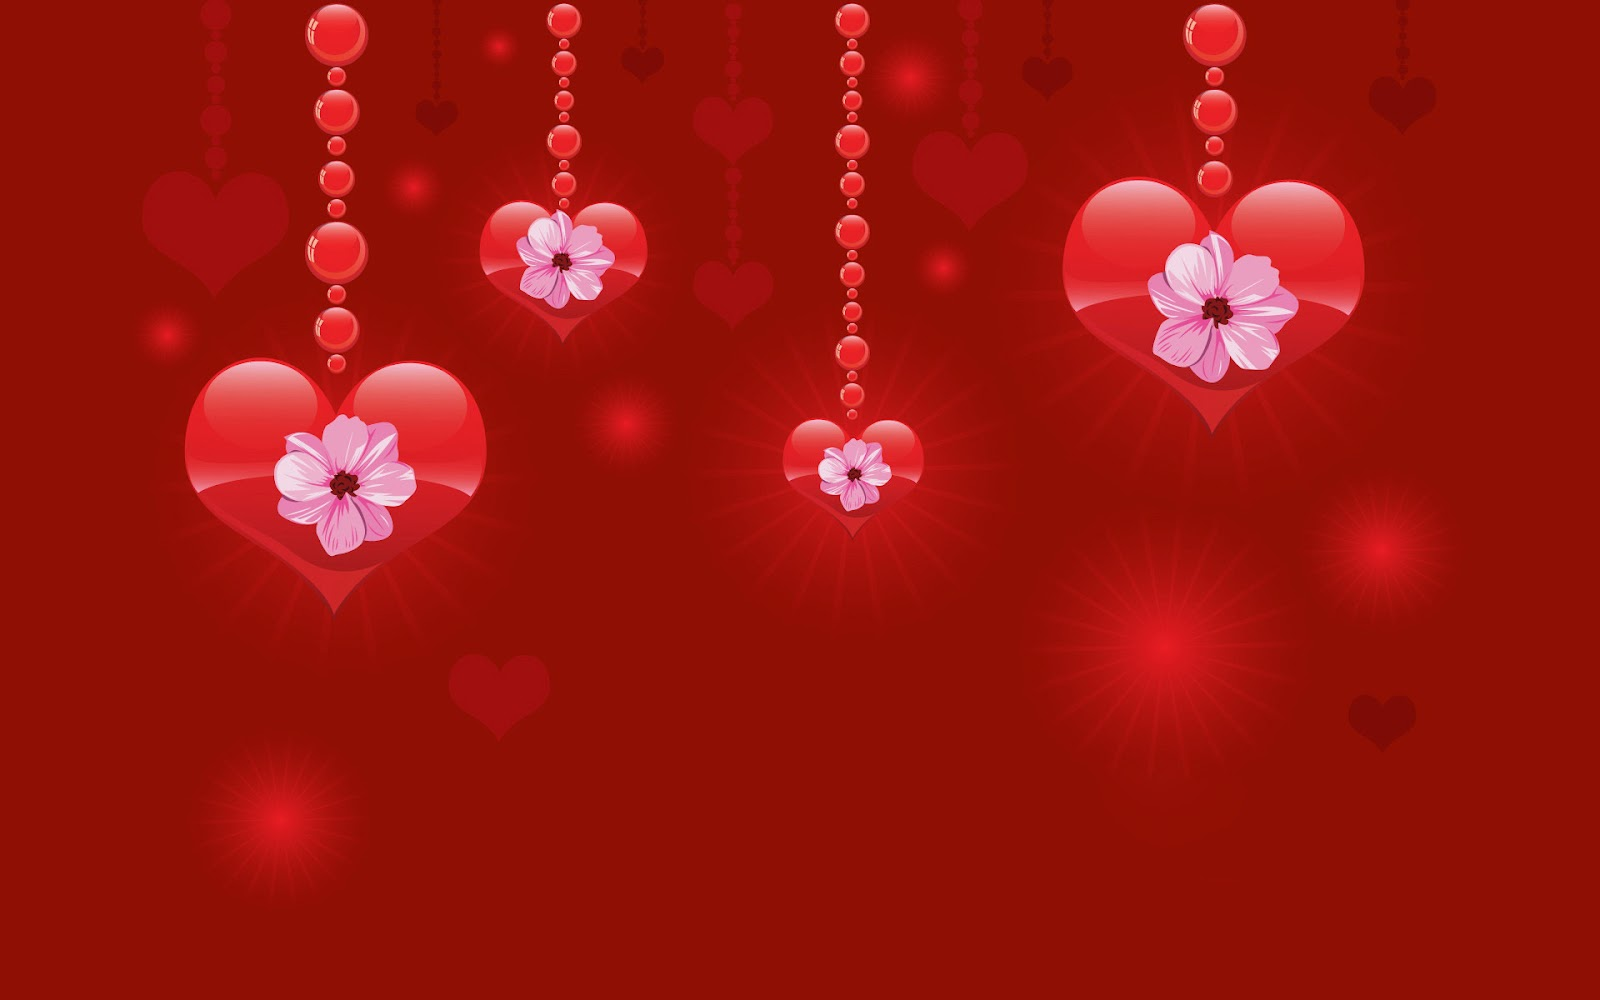 Valentines Day Wallpapers 2013 - 2014 ~ LOVE QUOTES